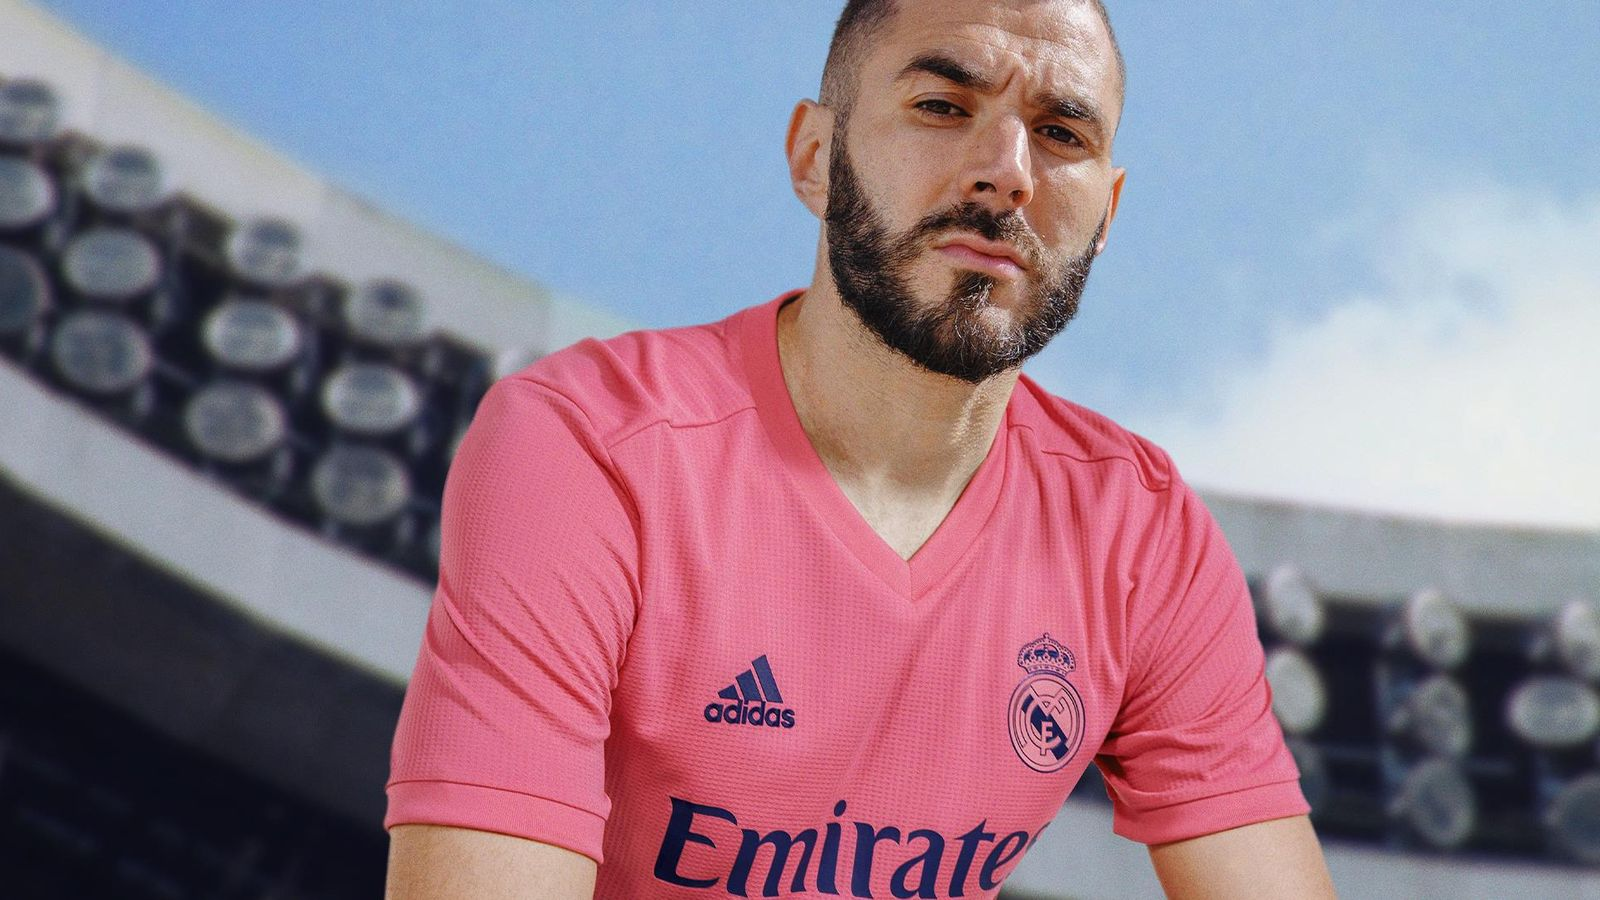 New kits 2020/21: Barcelona, Real Madrid, Inter and more from Europe |  Football News | Sky Sports